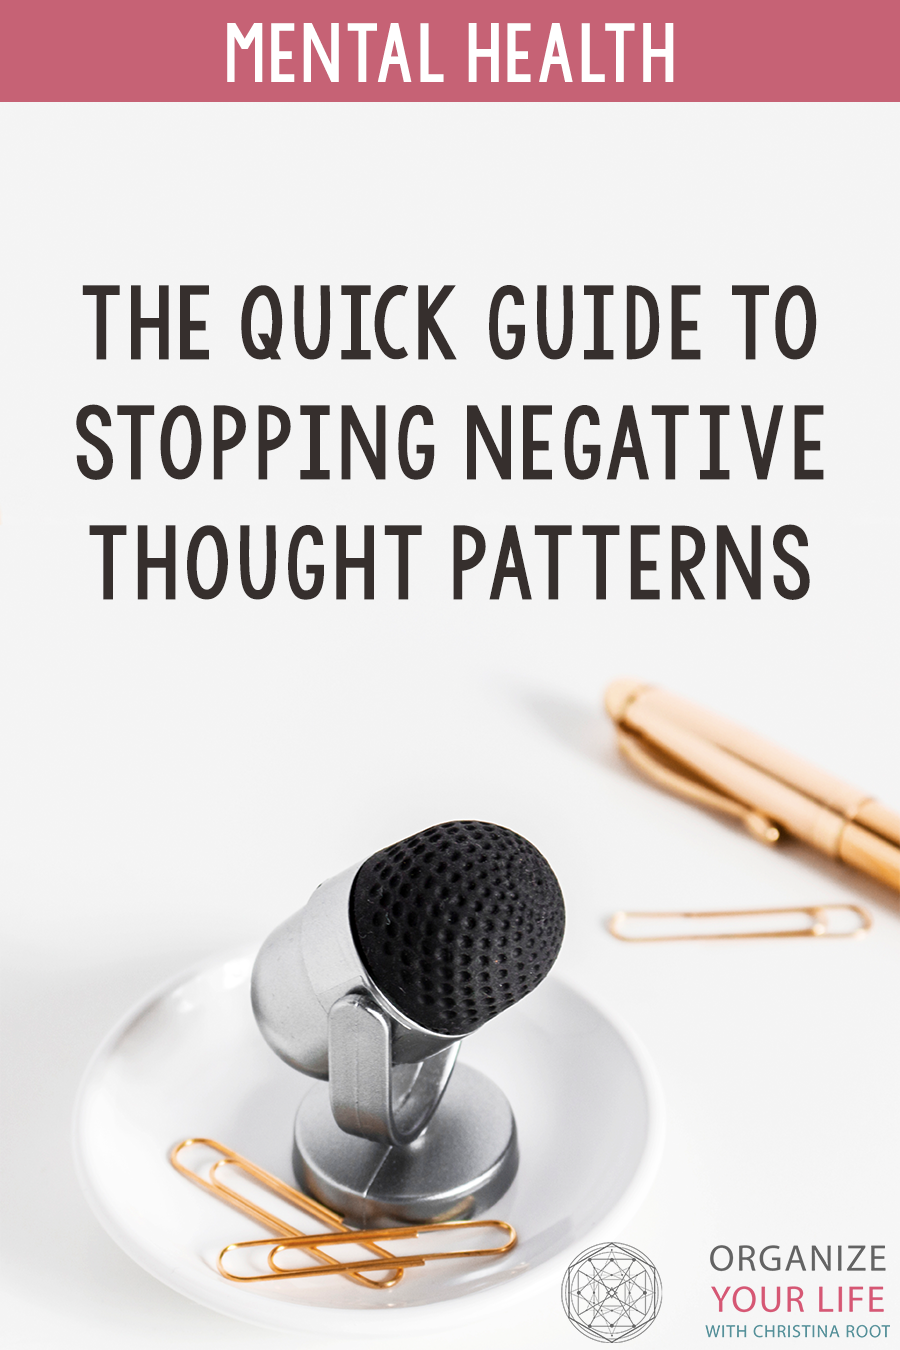 The quick way to stop negative thought patterns